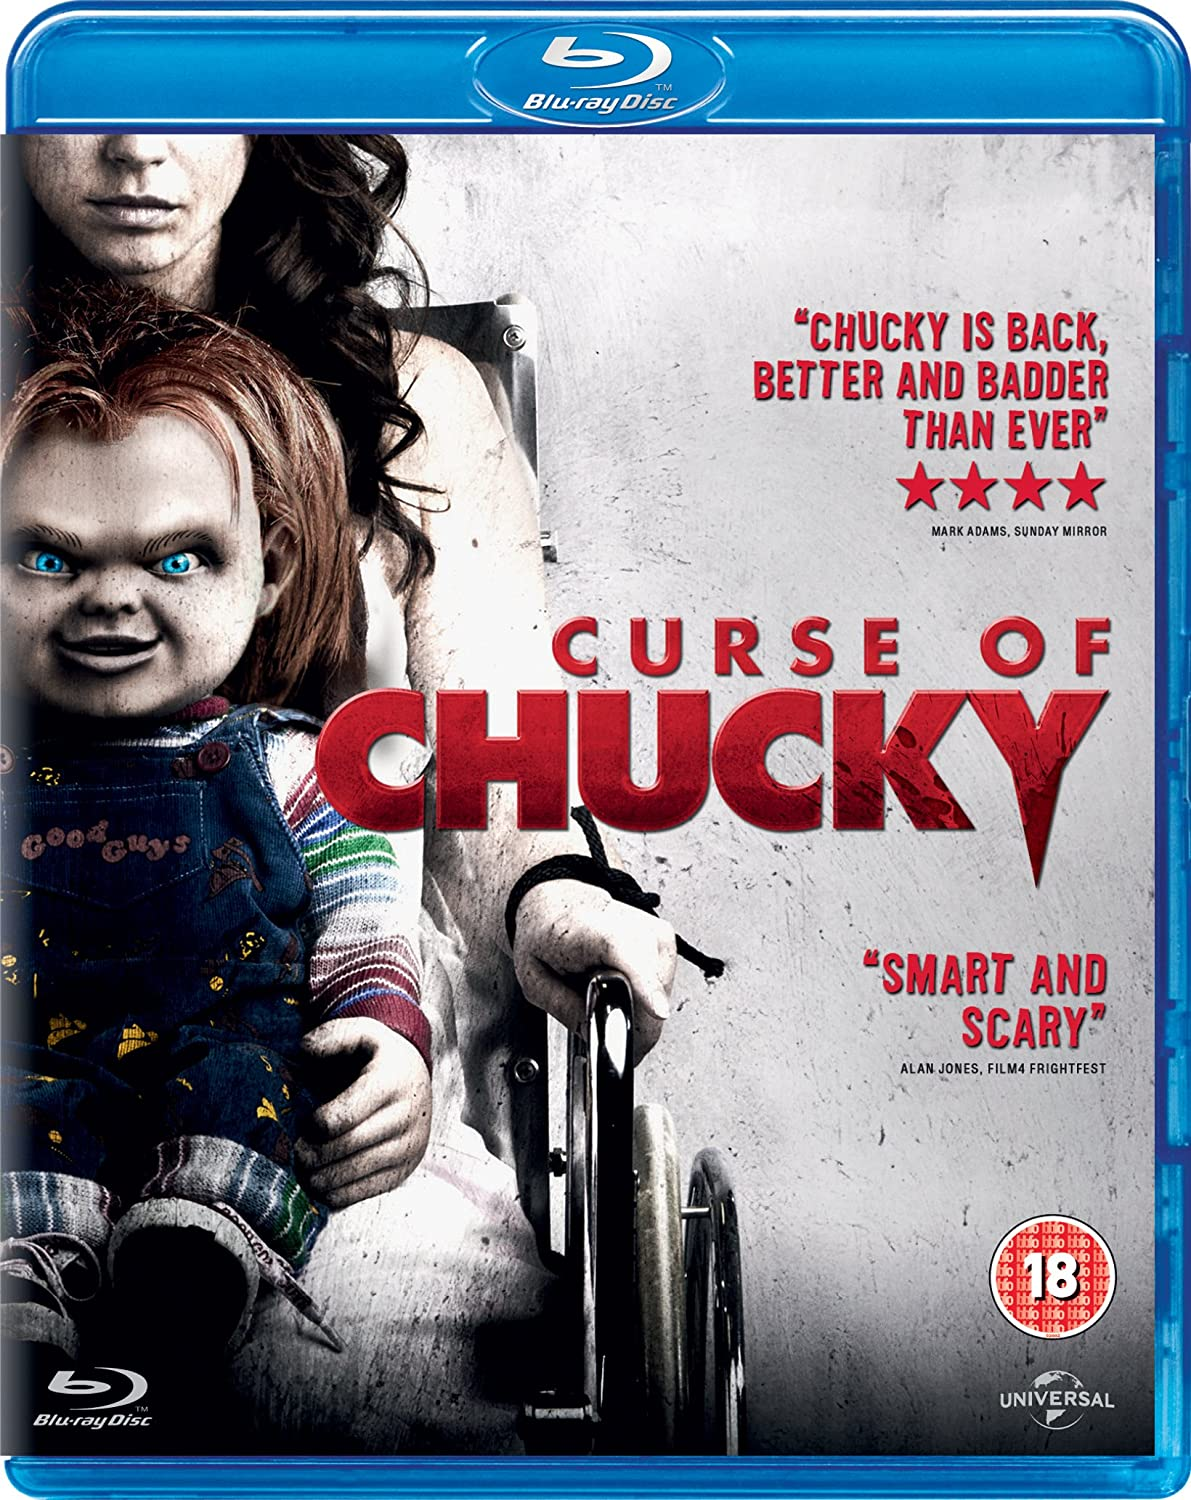 Parallax home of jesse maitland - Review Curse Of Chucky